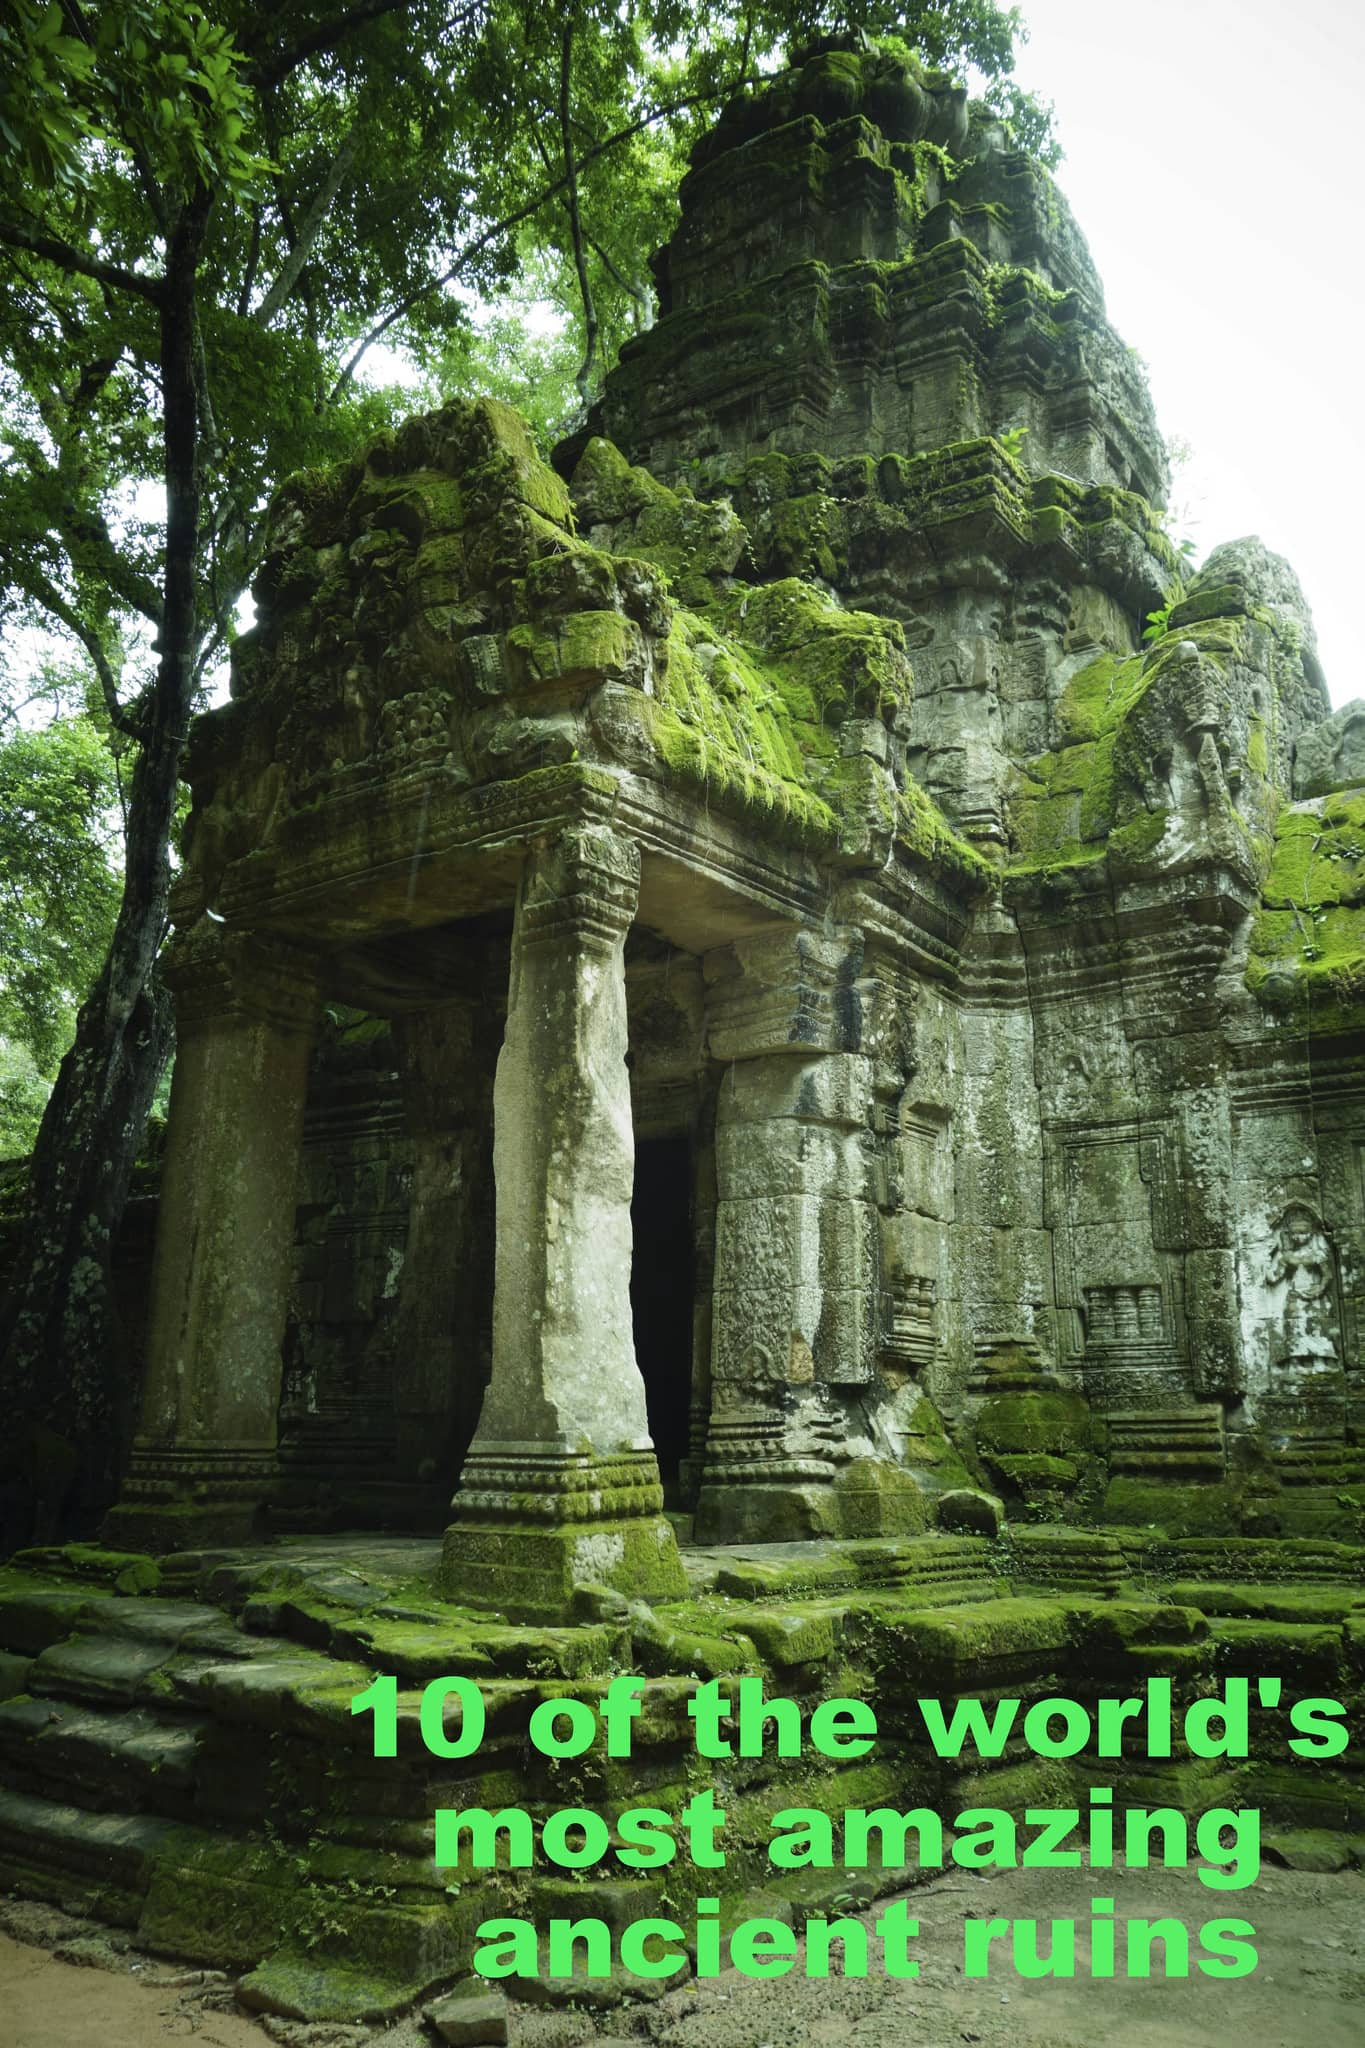 10 of the world's most amazing ancient ruins - Act of ...